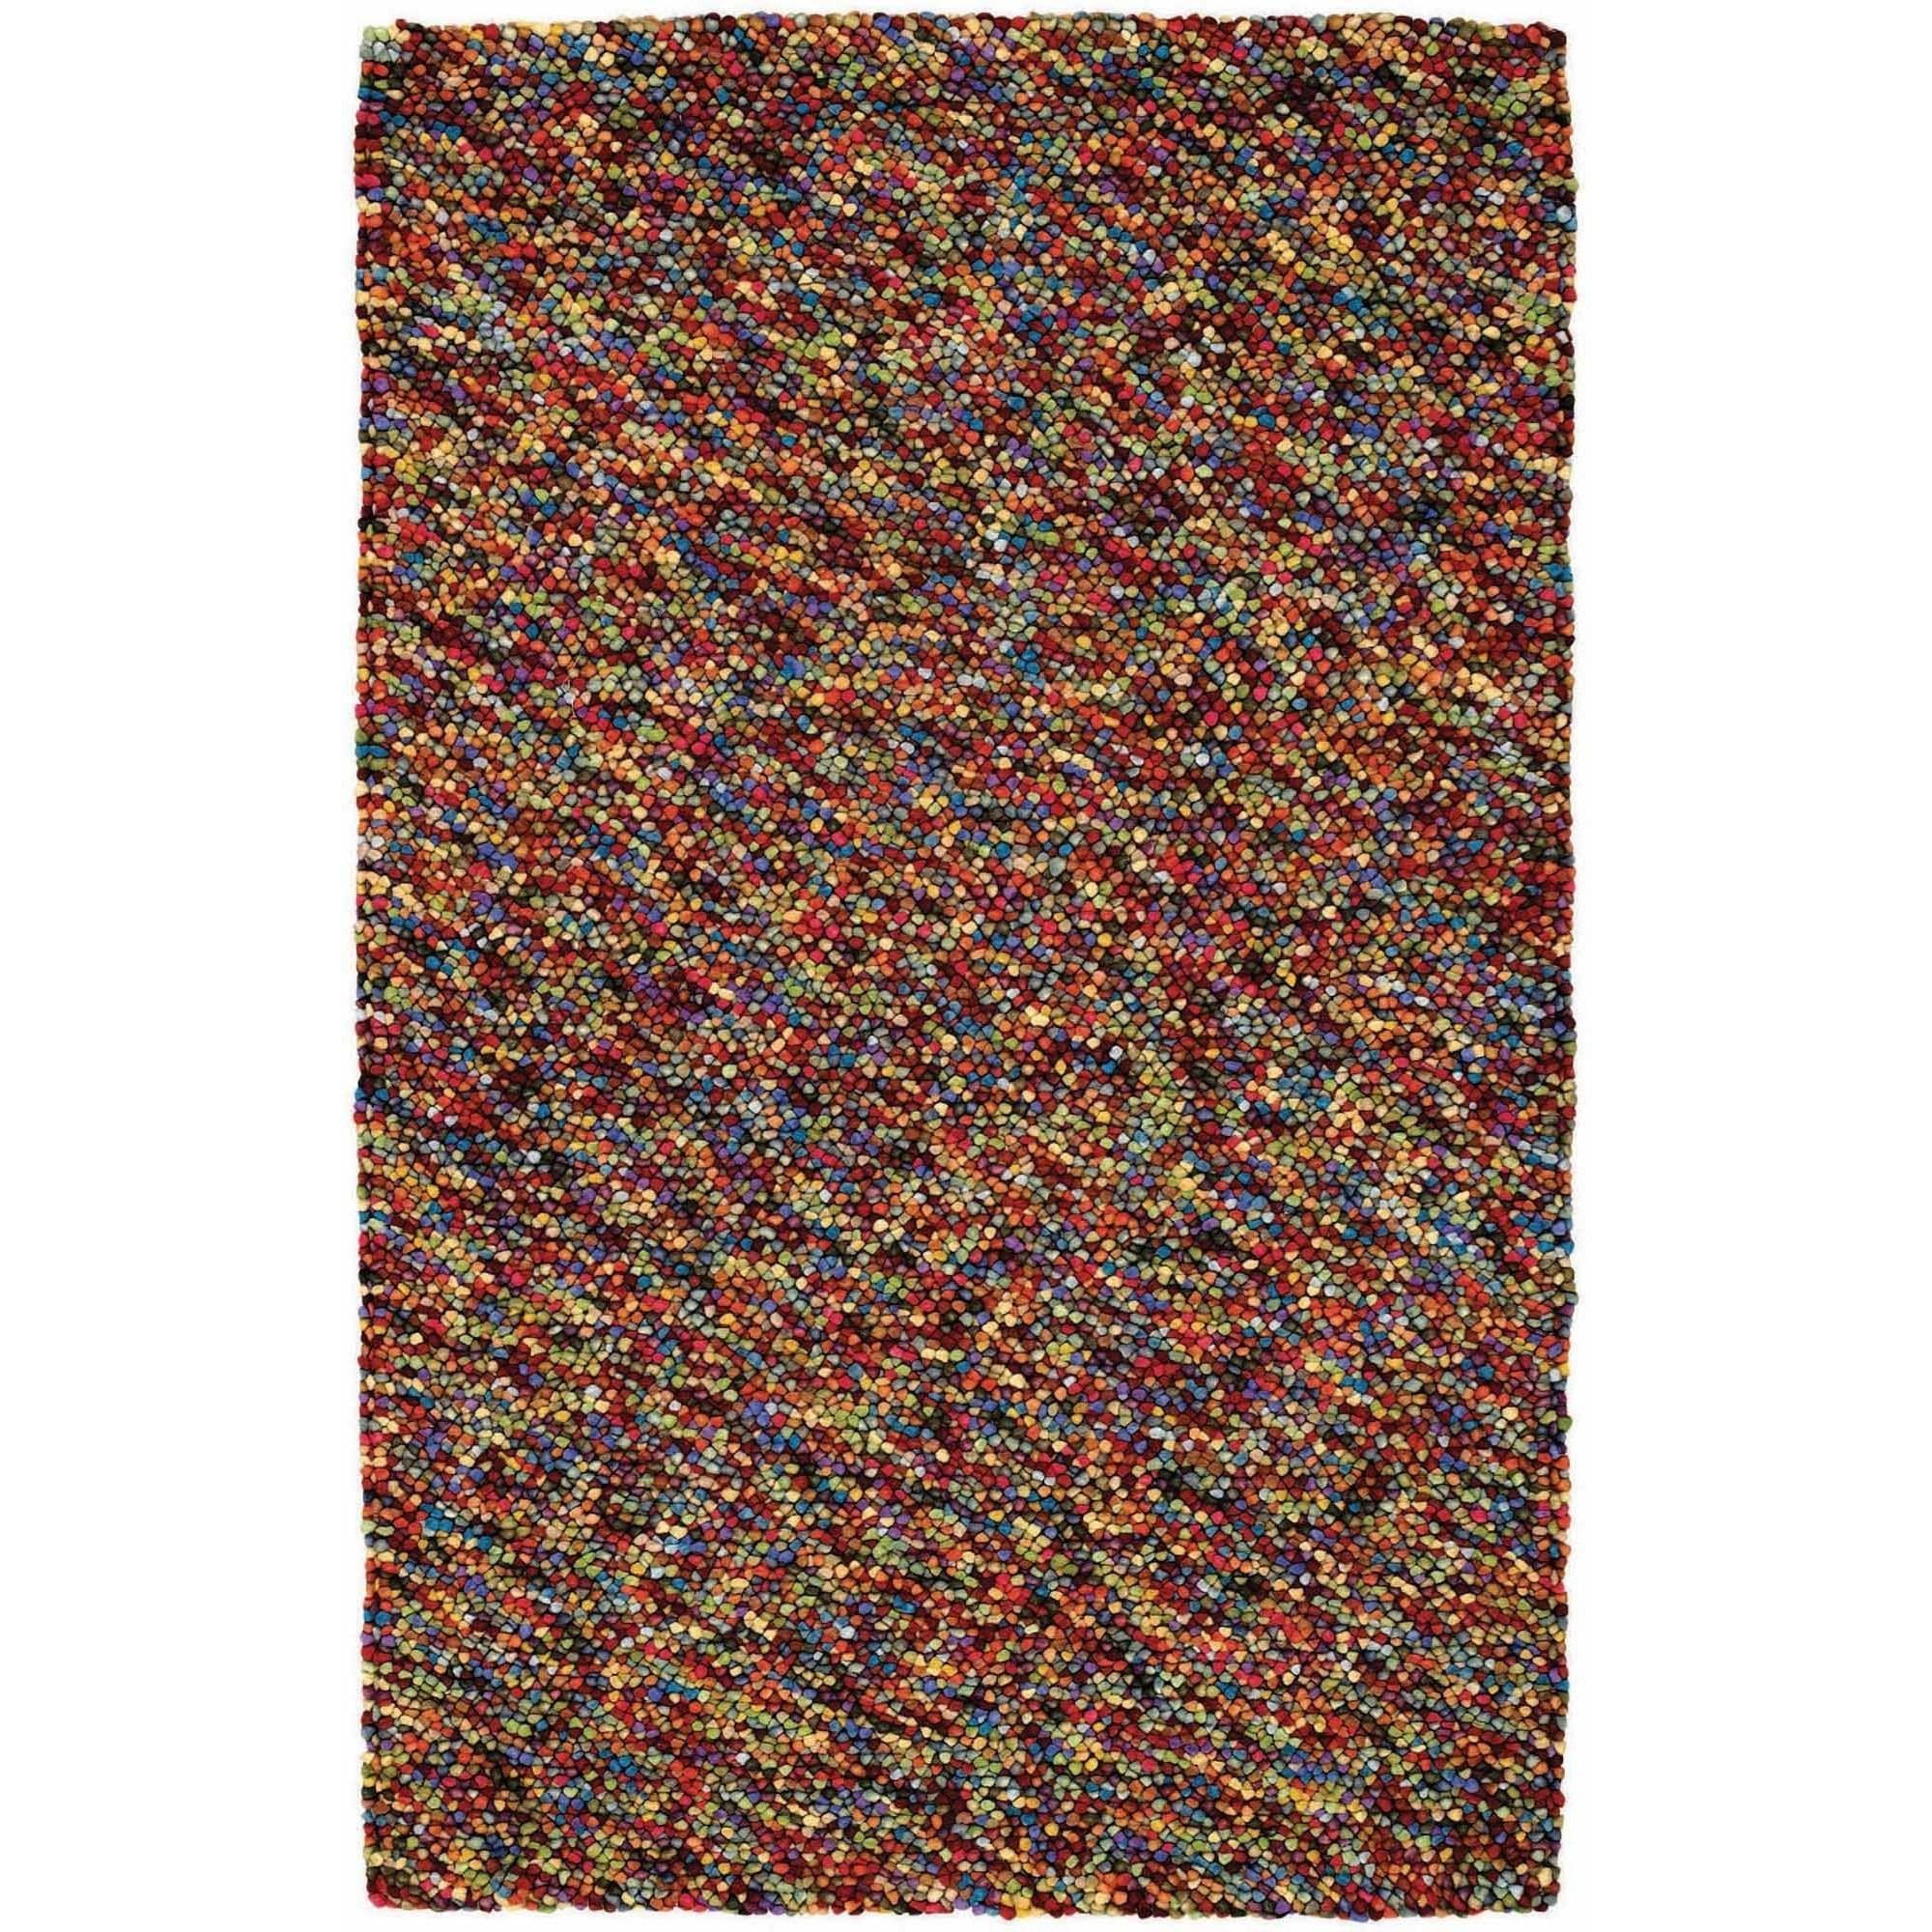 Stoney Creek Hand-Knotted Area Rug